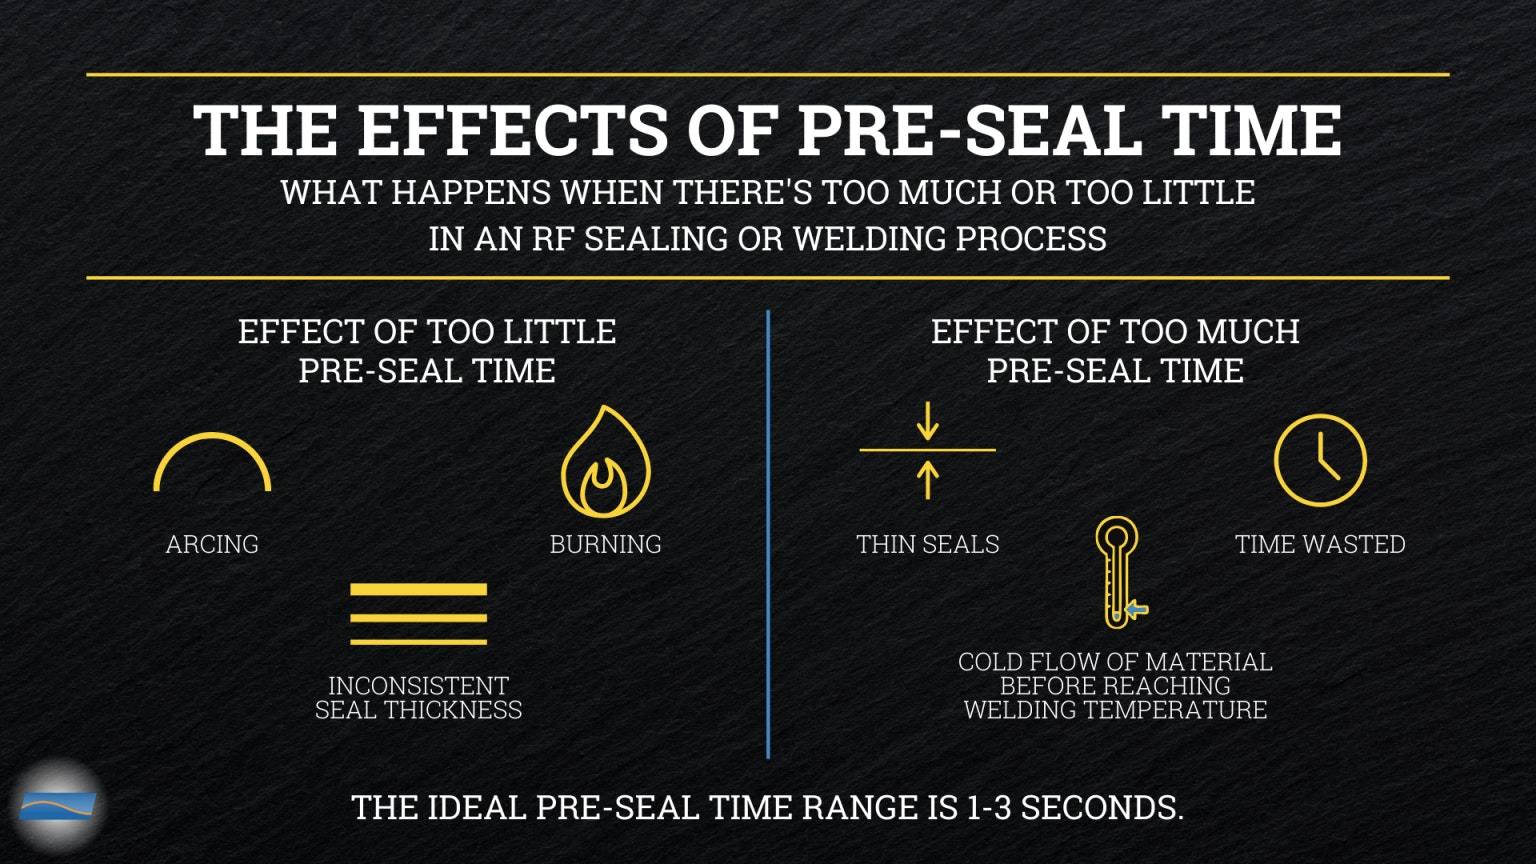 Image Toomuchtoolittlepre Sealtime 1536x864